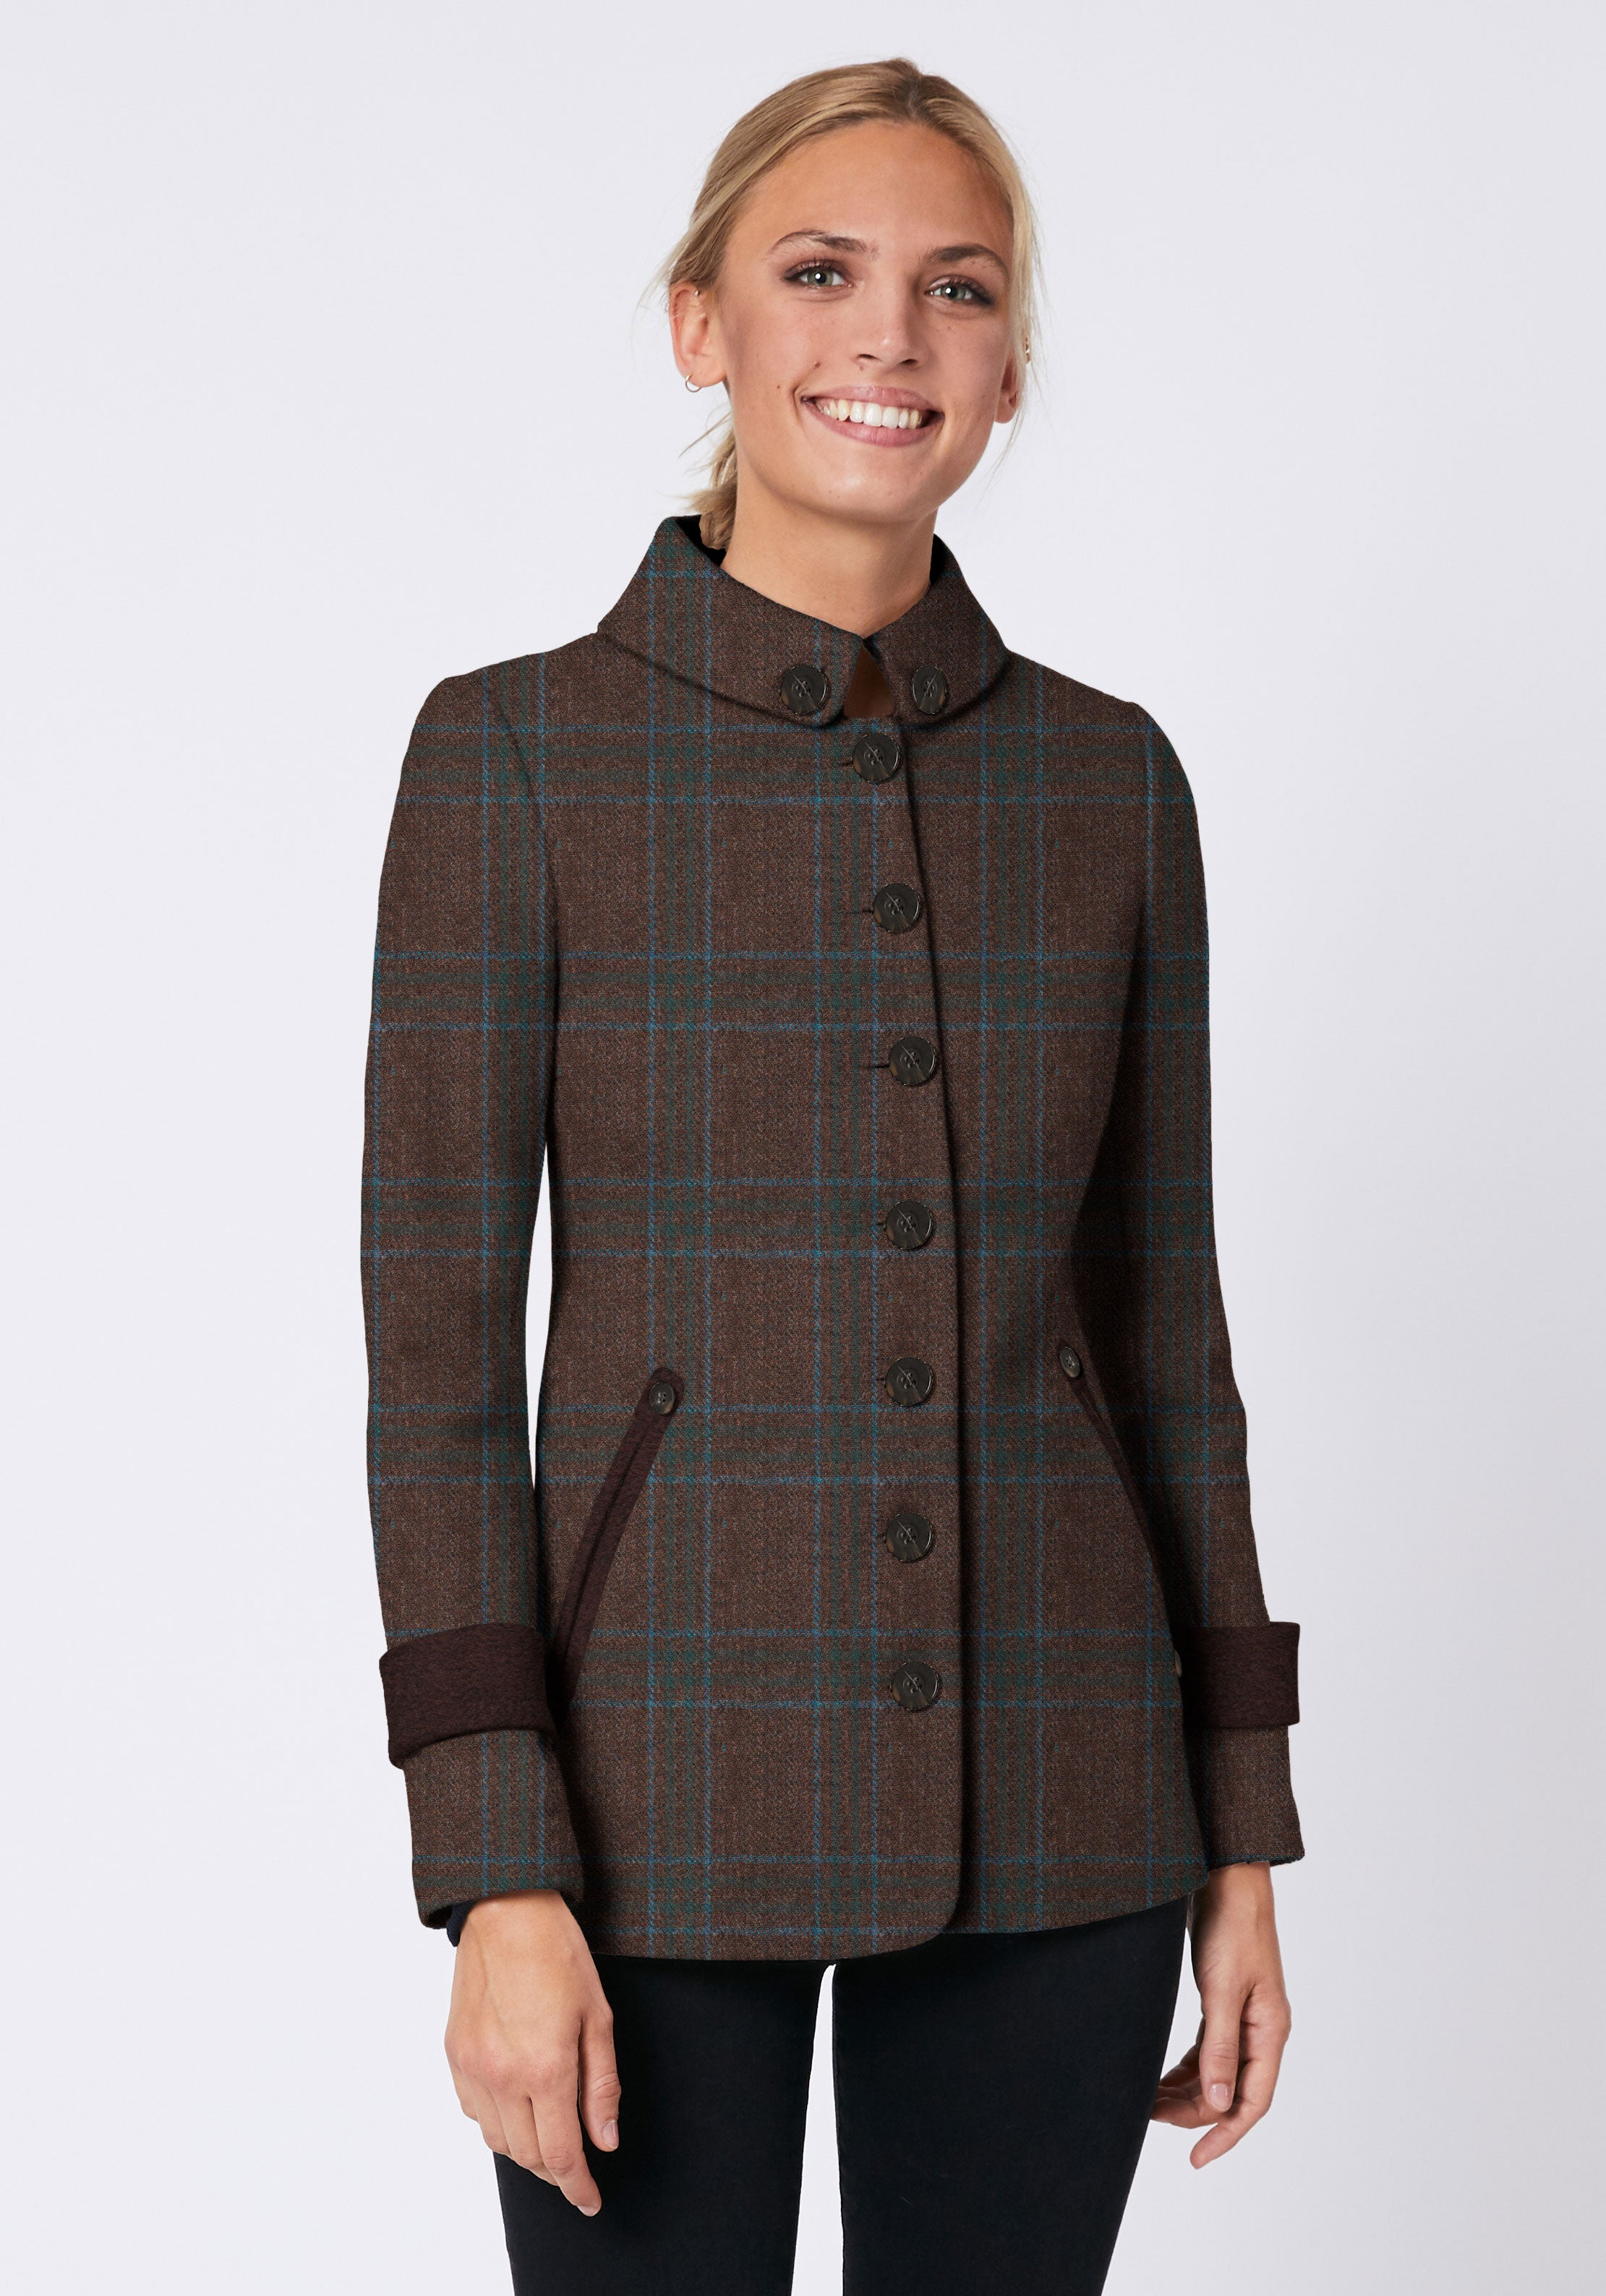 Hendre Jacket in Brown & Turquoise Check